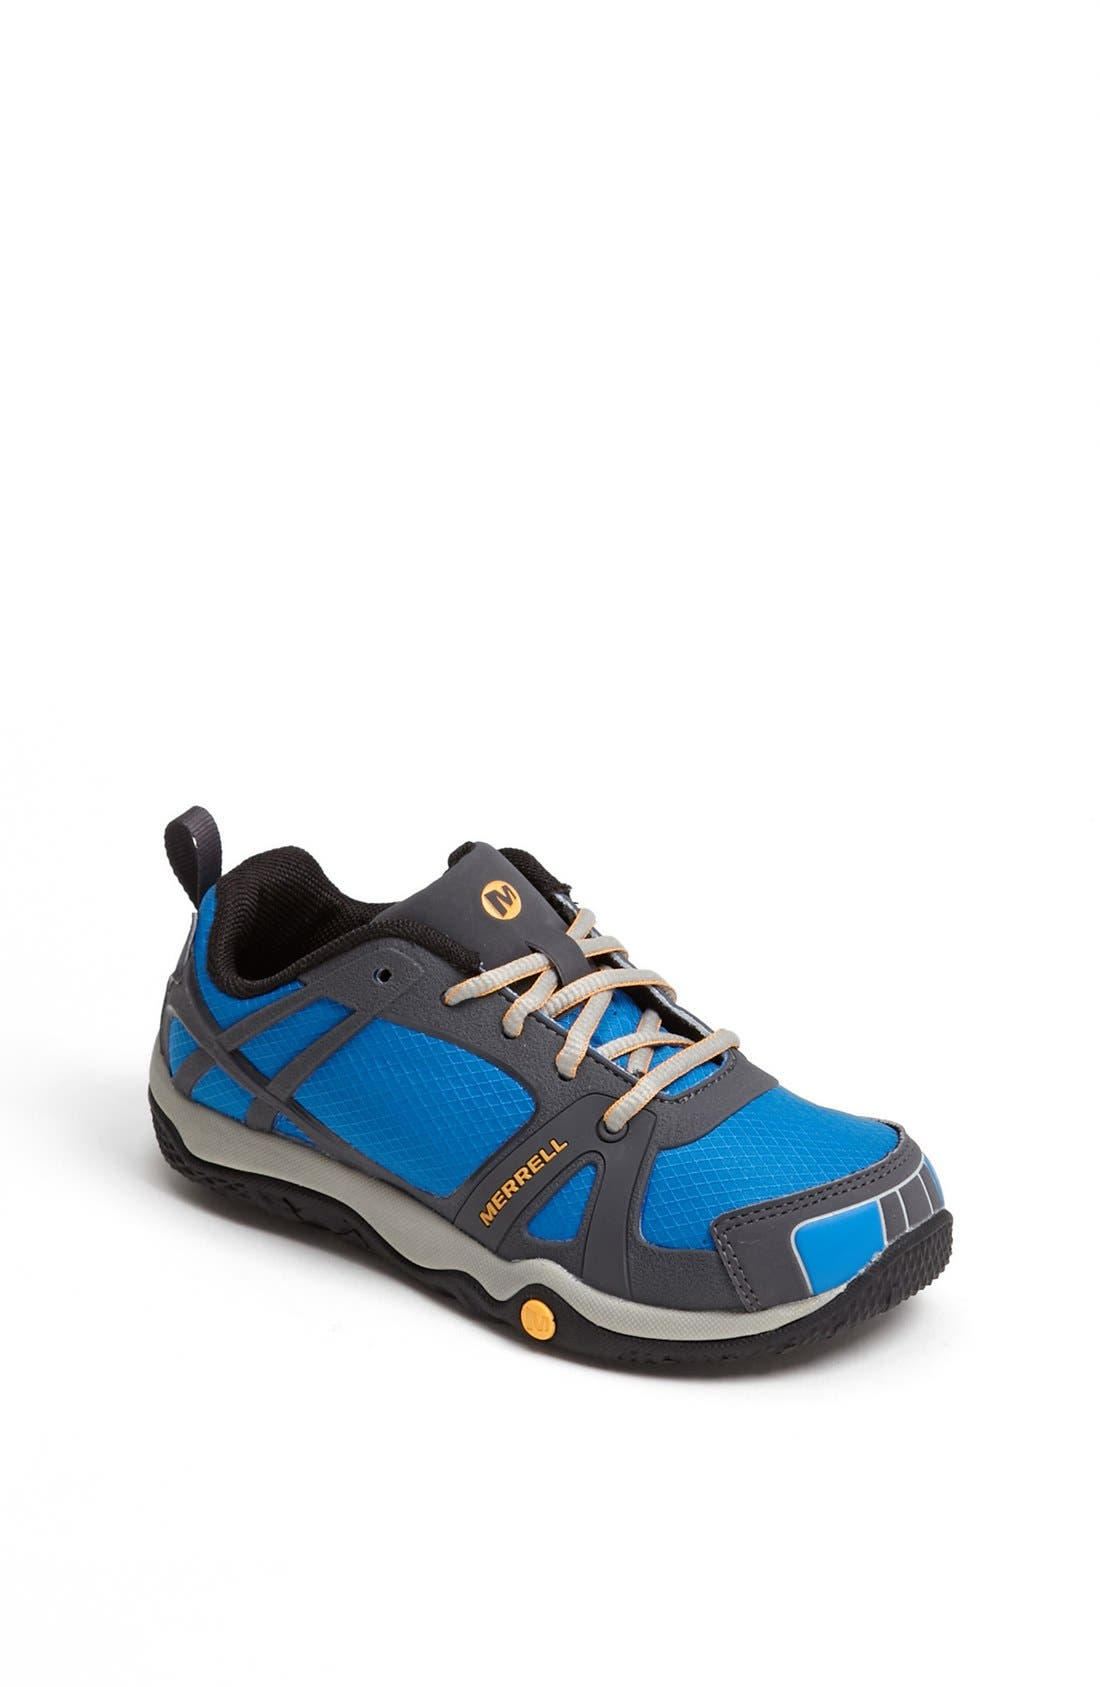 Alternate Image 1 Selected - Merrell 'Proterra Sport' Sneaker (Toddler, Little Kid & Big Kid)